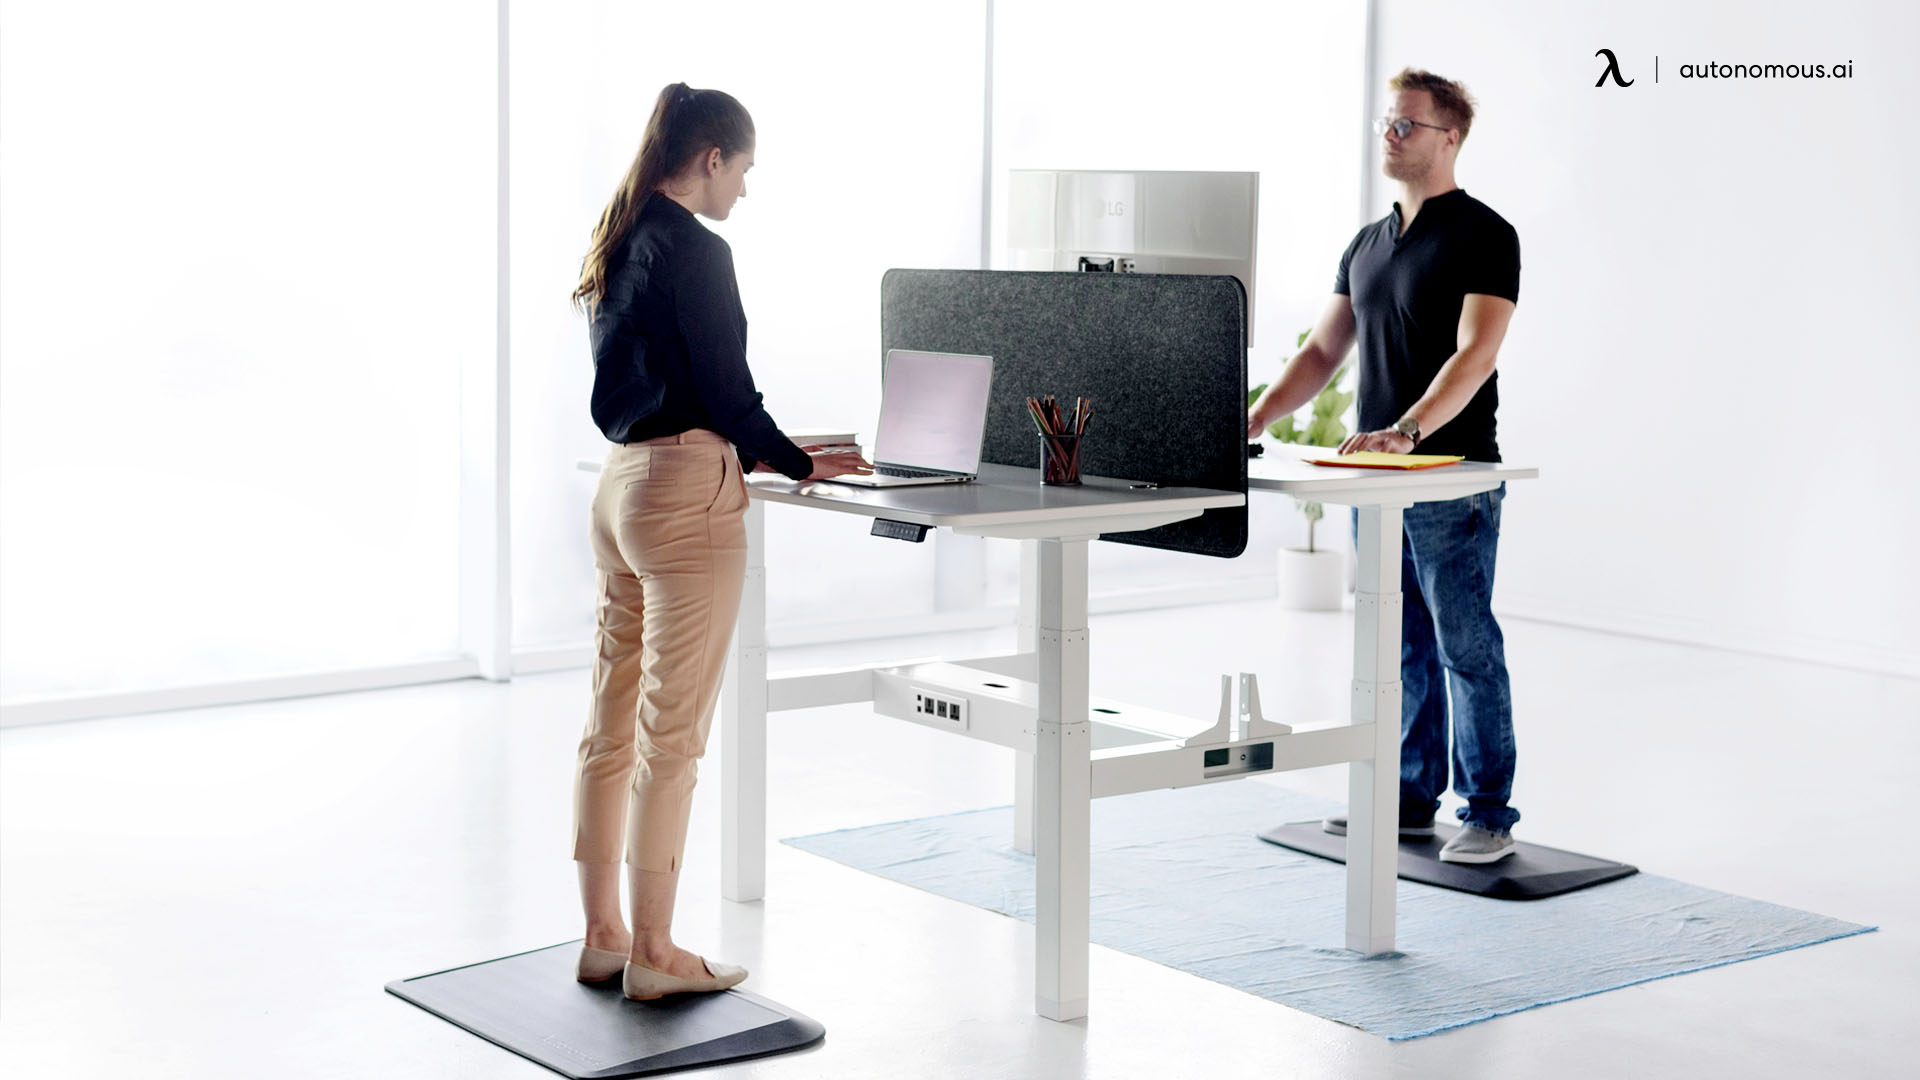 Double Desk for Co-Workers